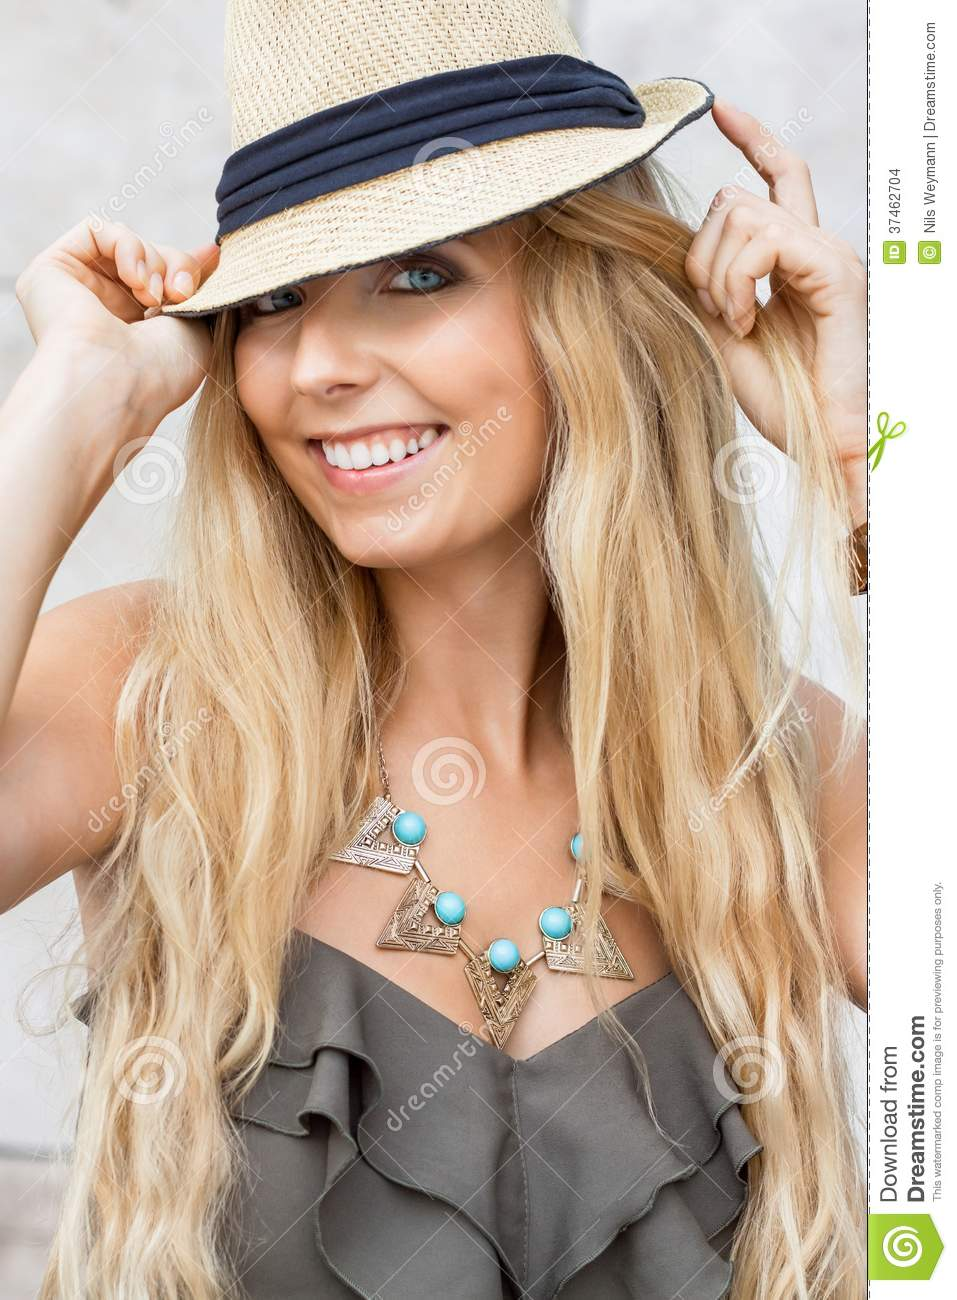 happy young blonde woman with hat outdoor summertime stock images image 37462704. Black Bedroom Furniture Sets. Home Design Ideas